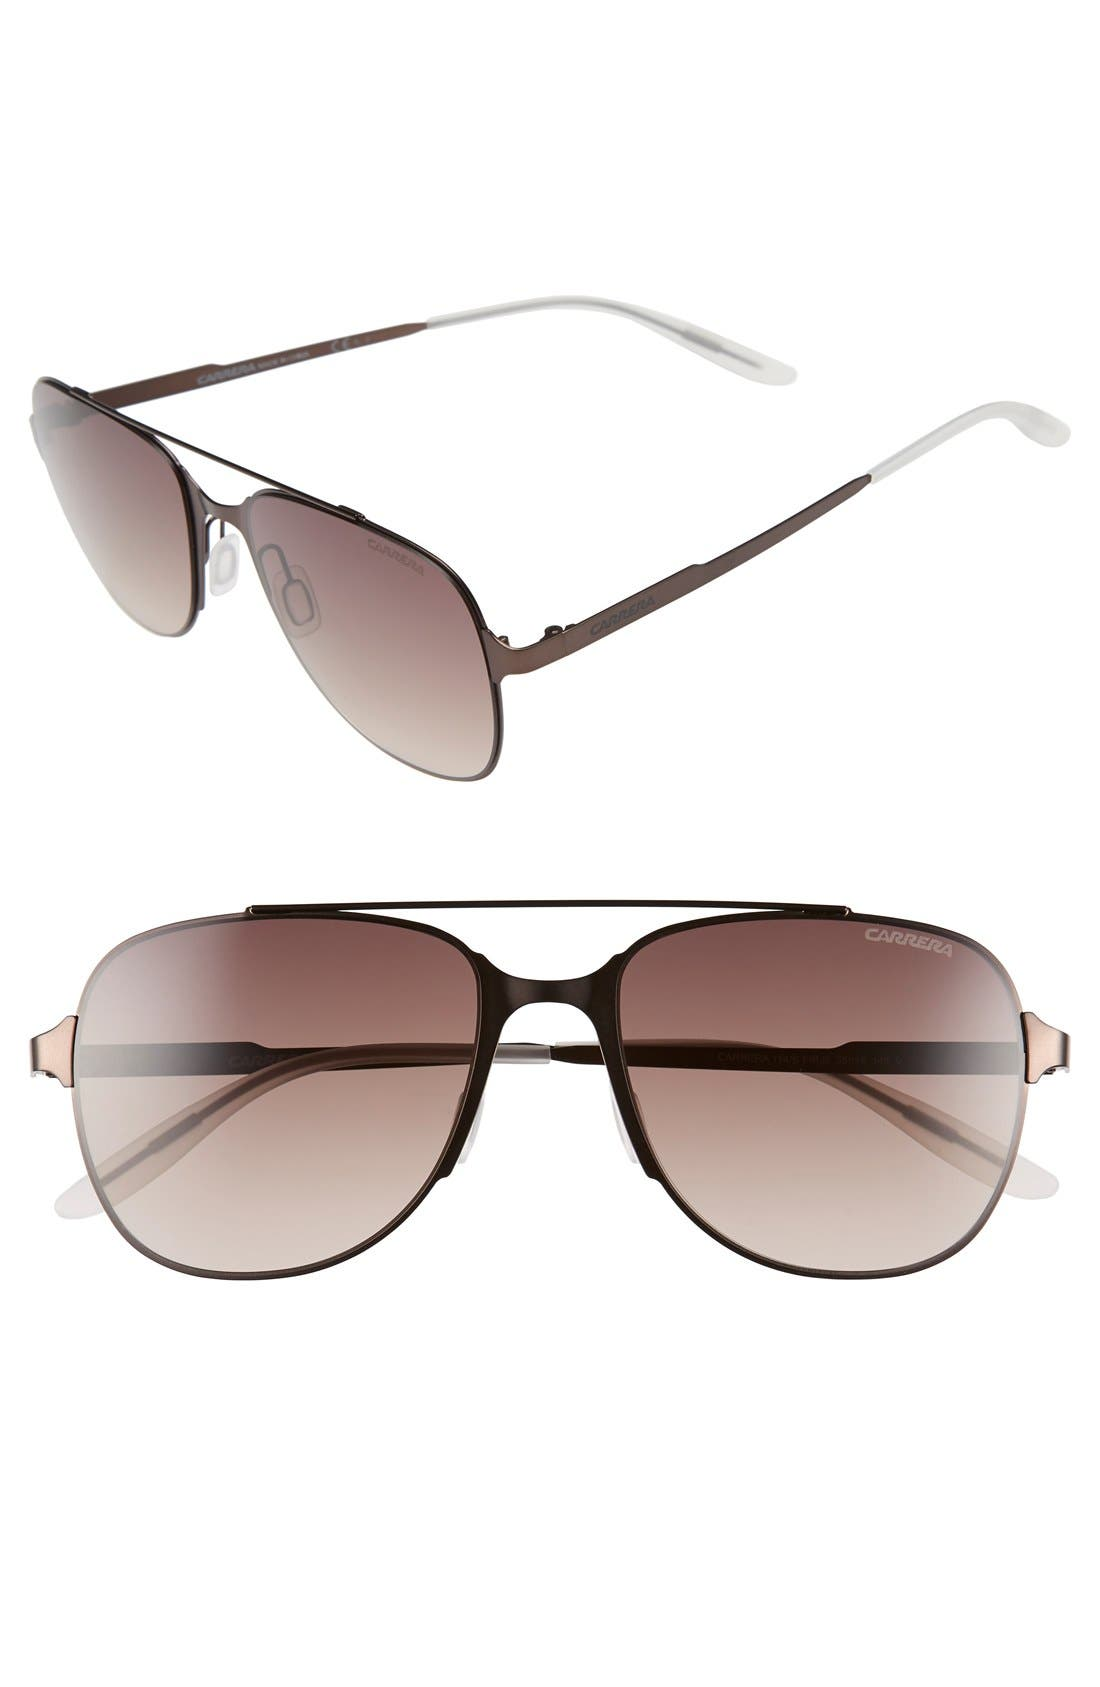 Main Image - Carrera Eyewear '114/S' 55mm Sunglasses